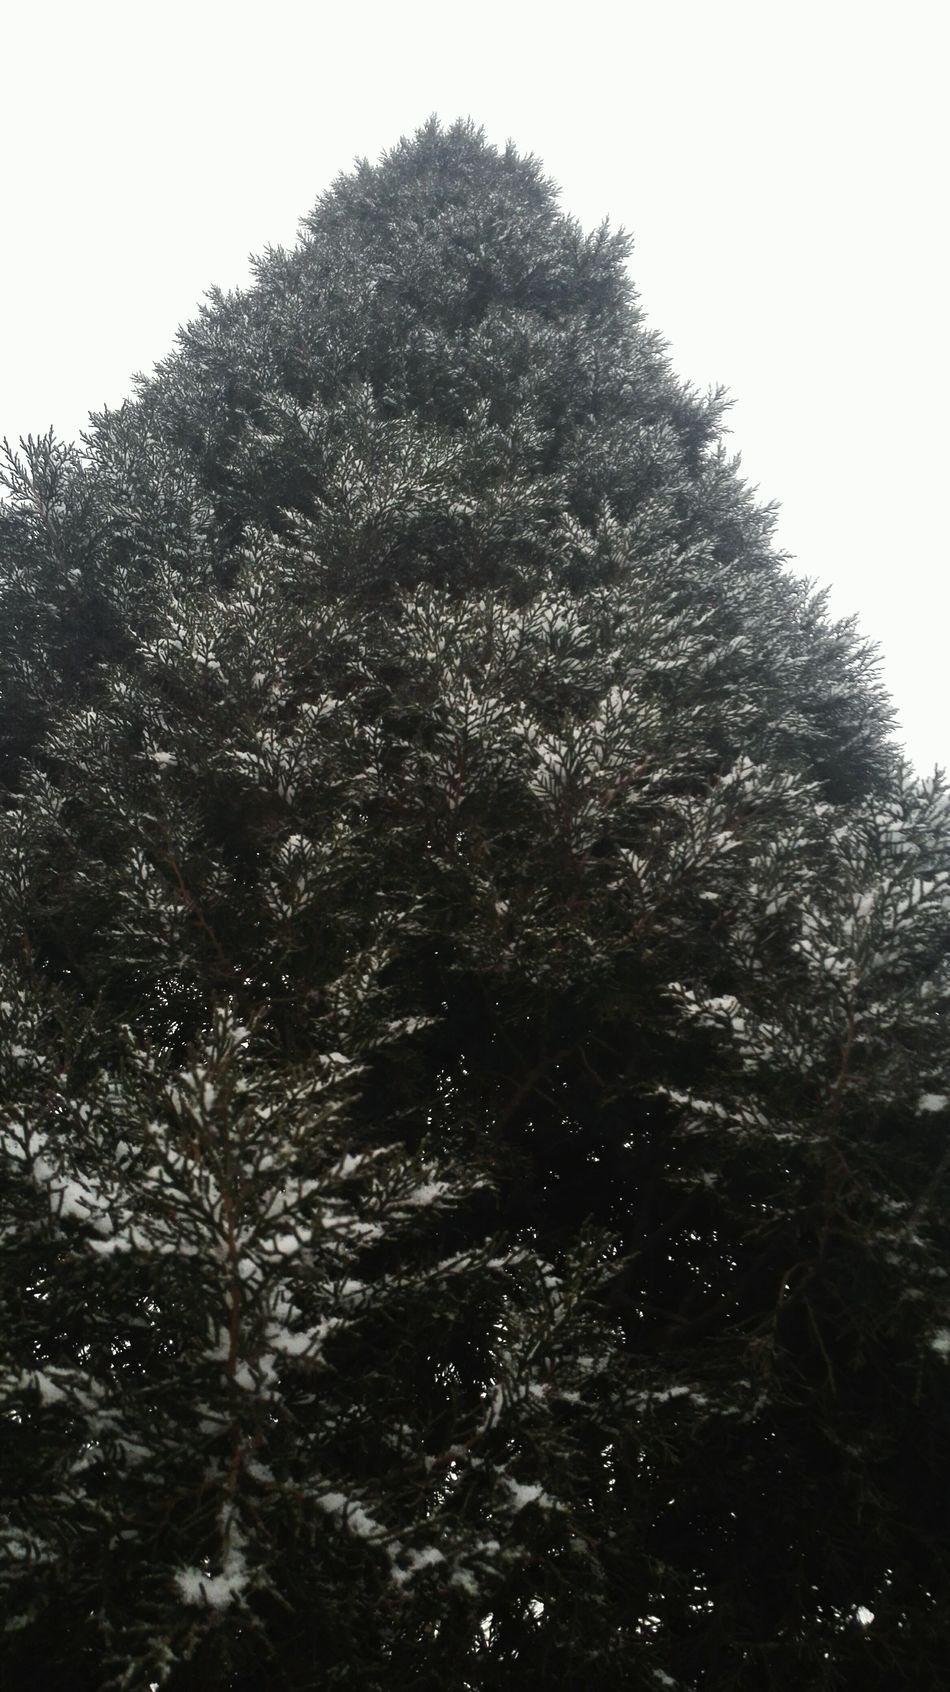 Pine Tree Snow ❄ Wintertime Mobliephotography Outdoors Cold Winter ❄⛄ Take Photos From My Point Of View First Snow ♥